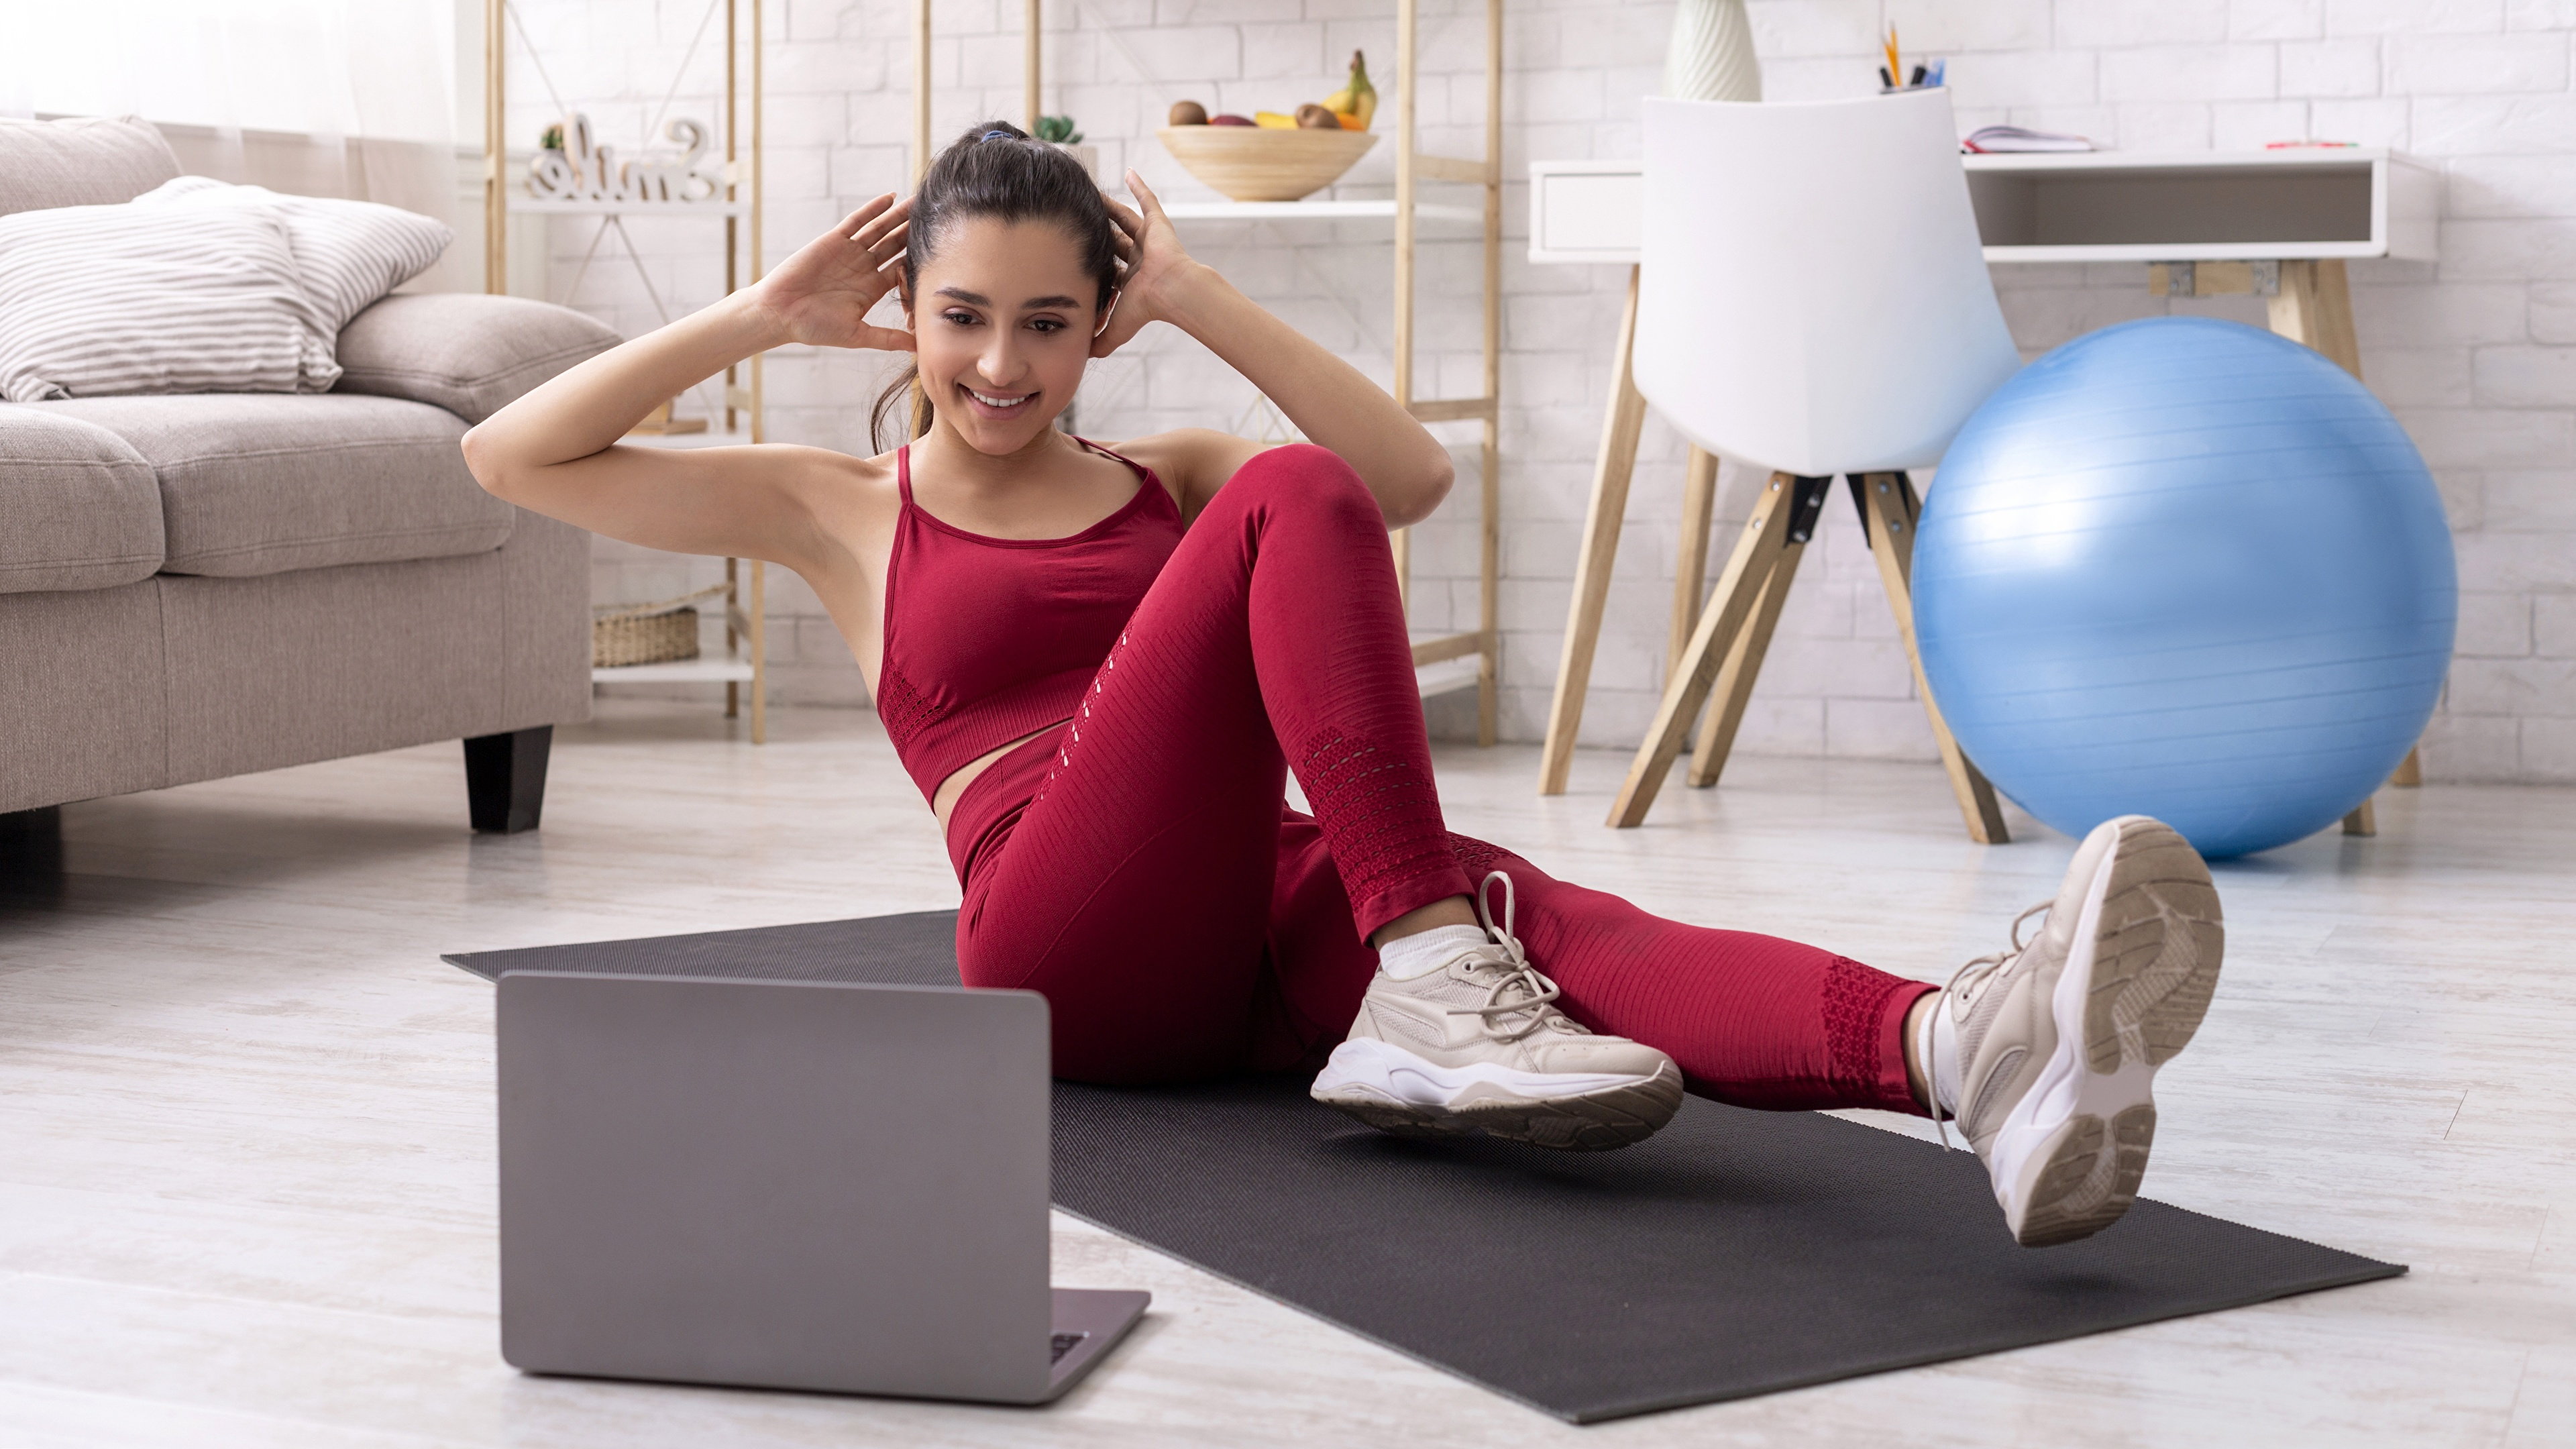 Image Laptops Physical exercise Smile Fitness athletic young woman Legs 3840x2160 Workout Girls Sport female sports